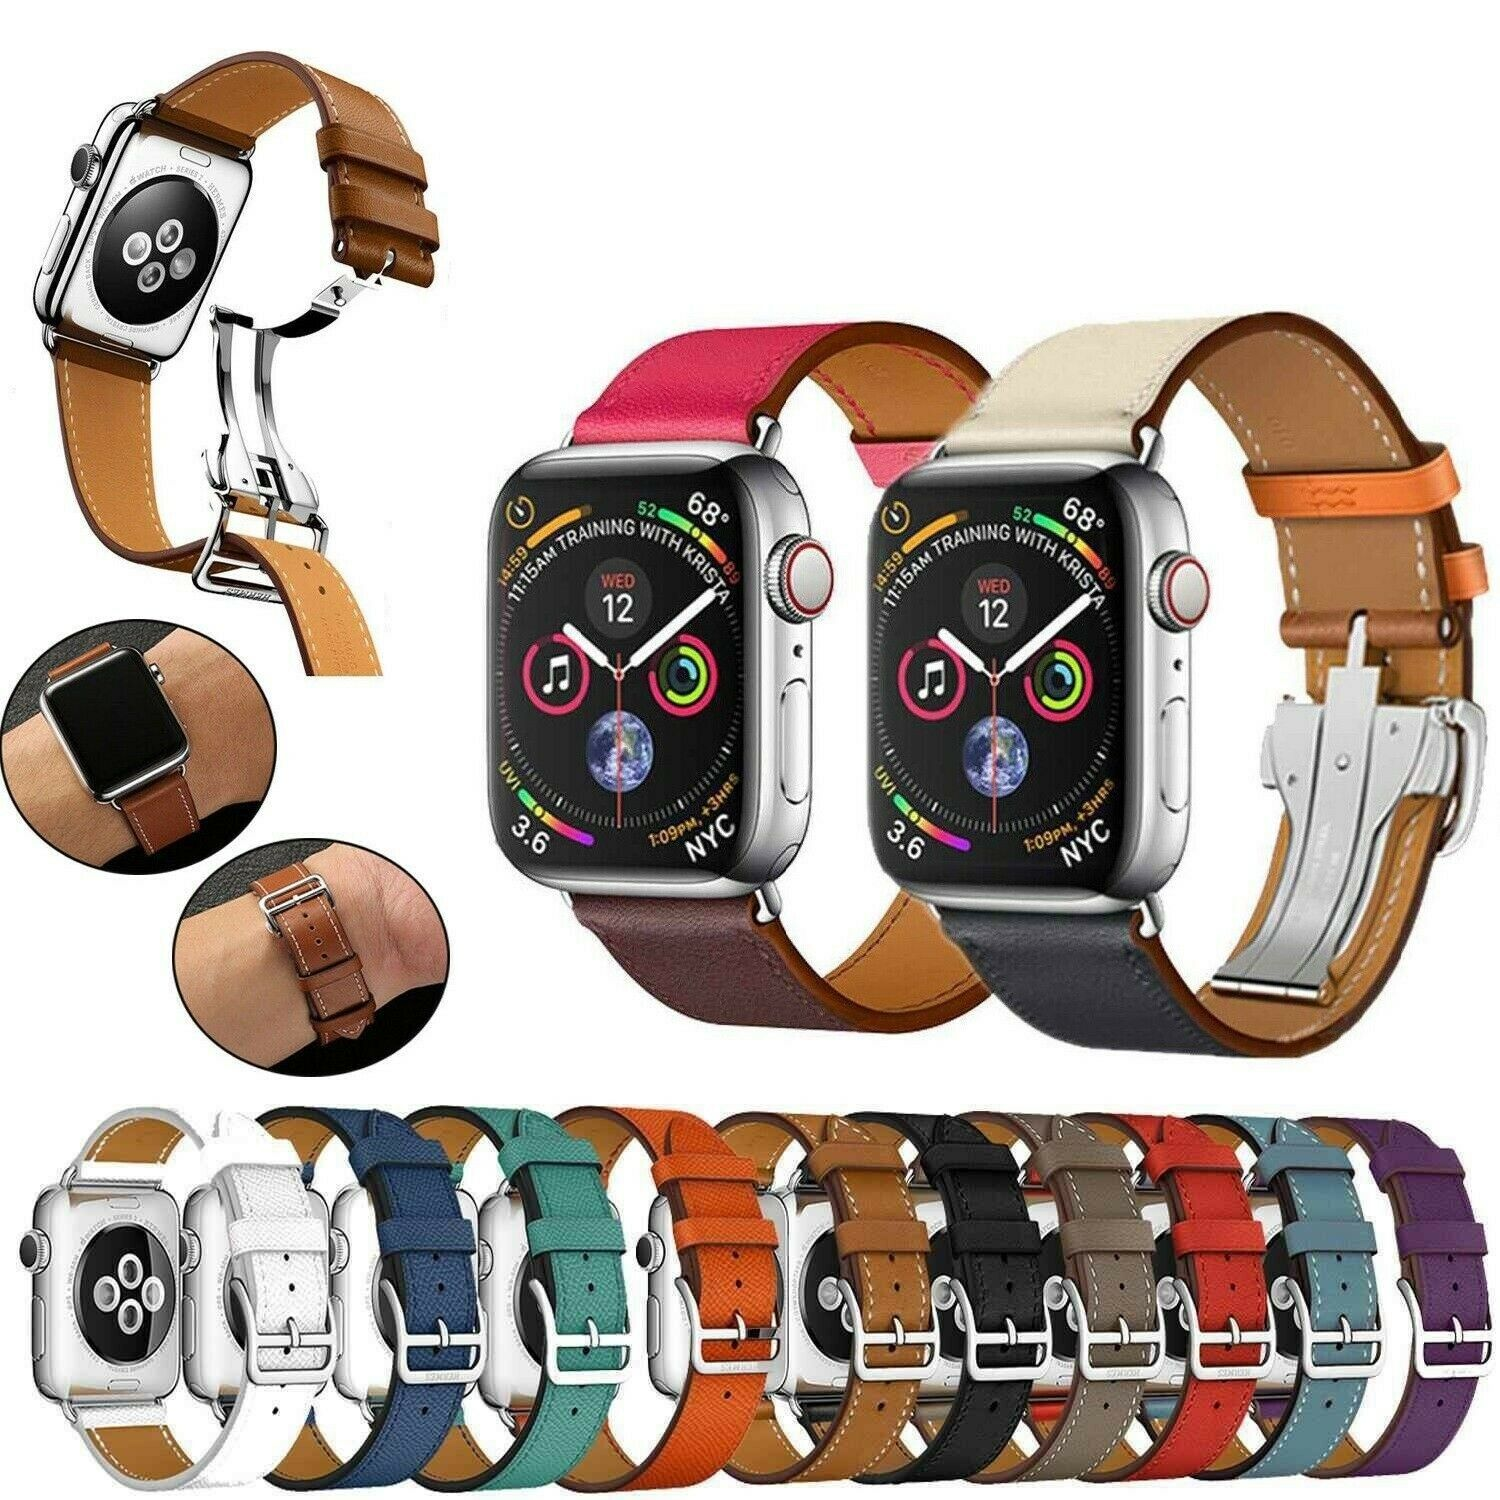 iwatch: Leather Band Deployment Buckle Single Tour iWatch Strap For Apple Watch 6/5/SE